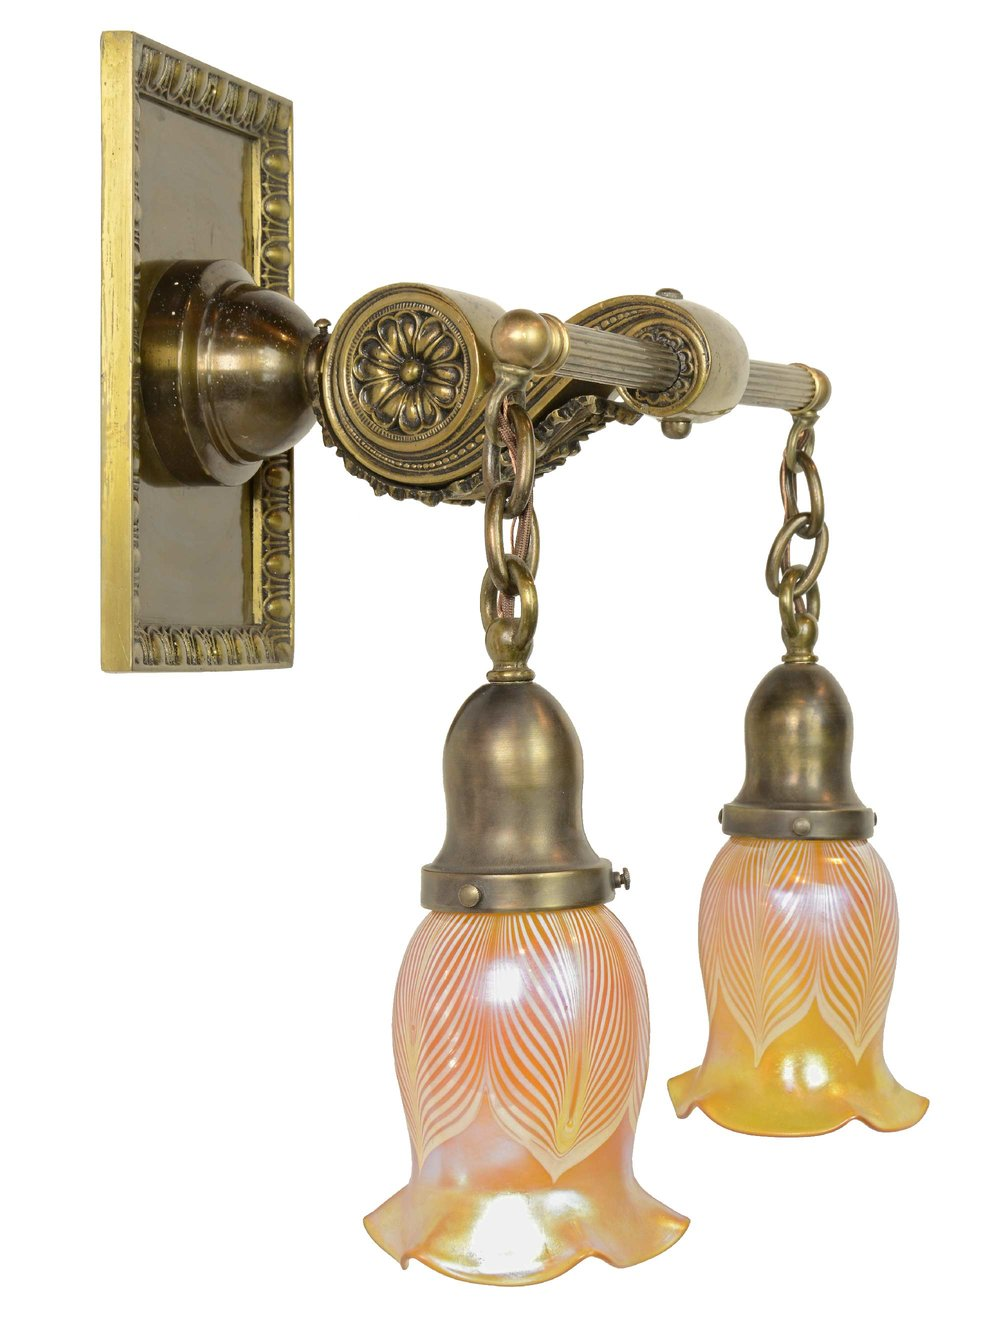 45448-cast-brass-sconce-with-art-glass-shades-side.jpg